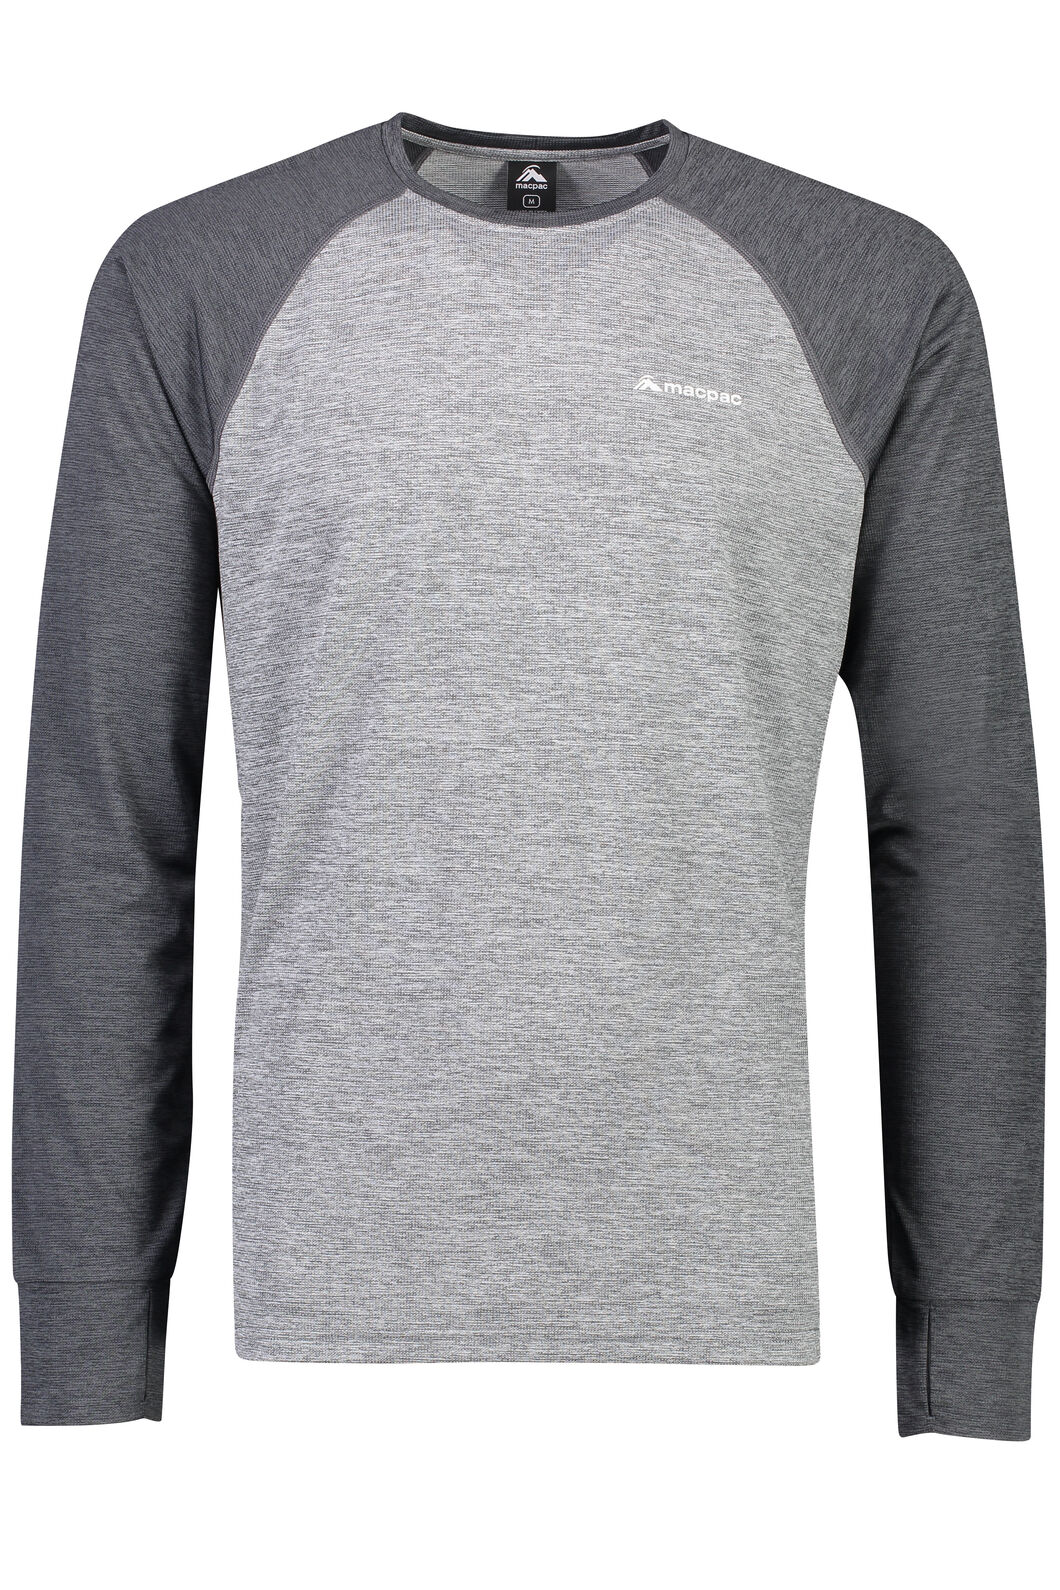 Macpac Take a Hike Long Sleeve Top - Men's, Monument, hi-res